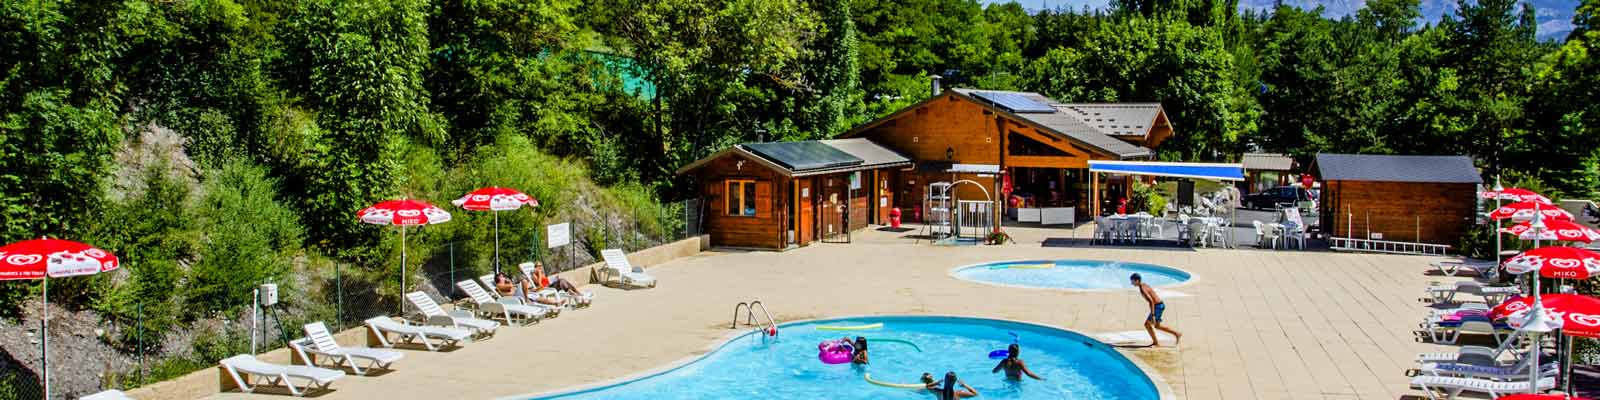 Tarifs camping alpes haute provence camping fontarache for Camping haute provence avec piscine